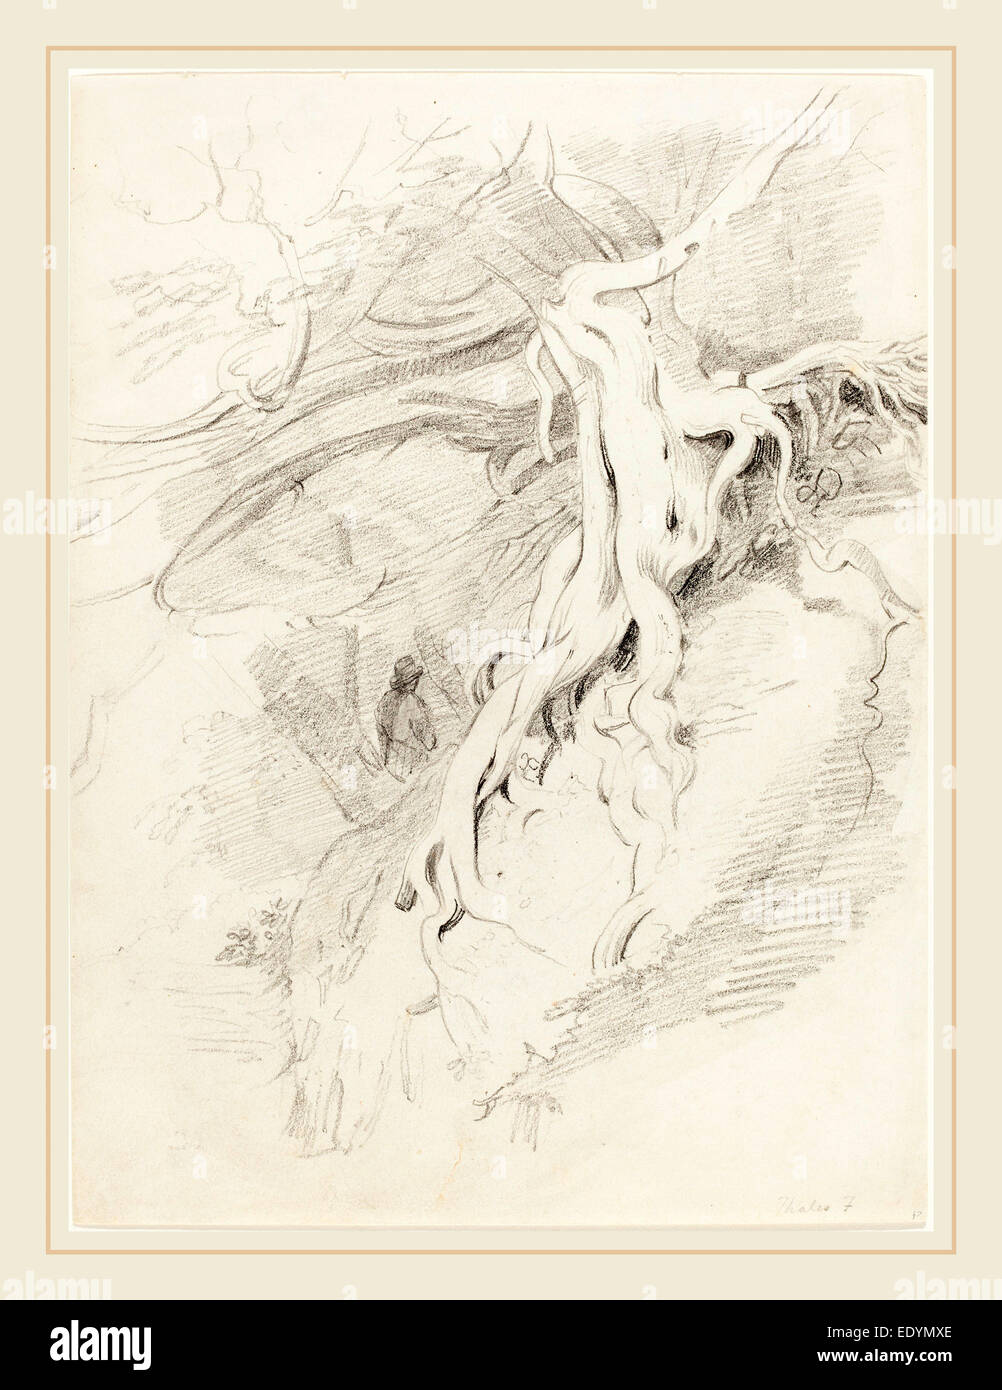 Thales Fielding, British (1793-1837), The Yew at Clifton, graphite on wove paper - Stock Image